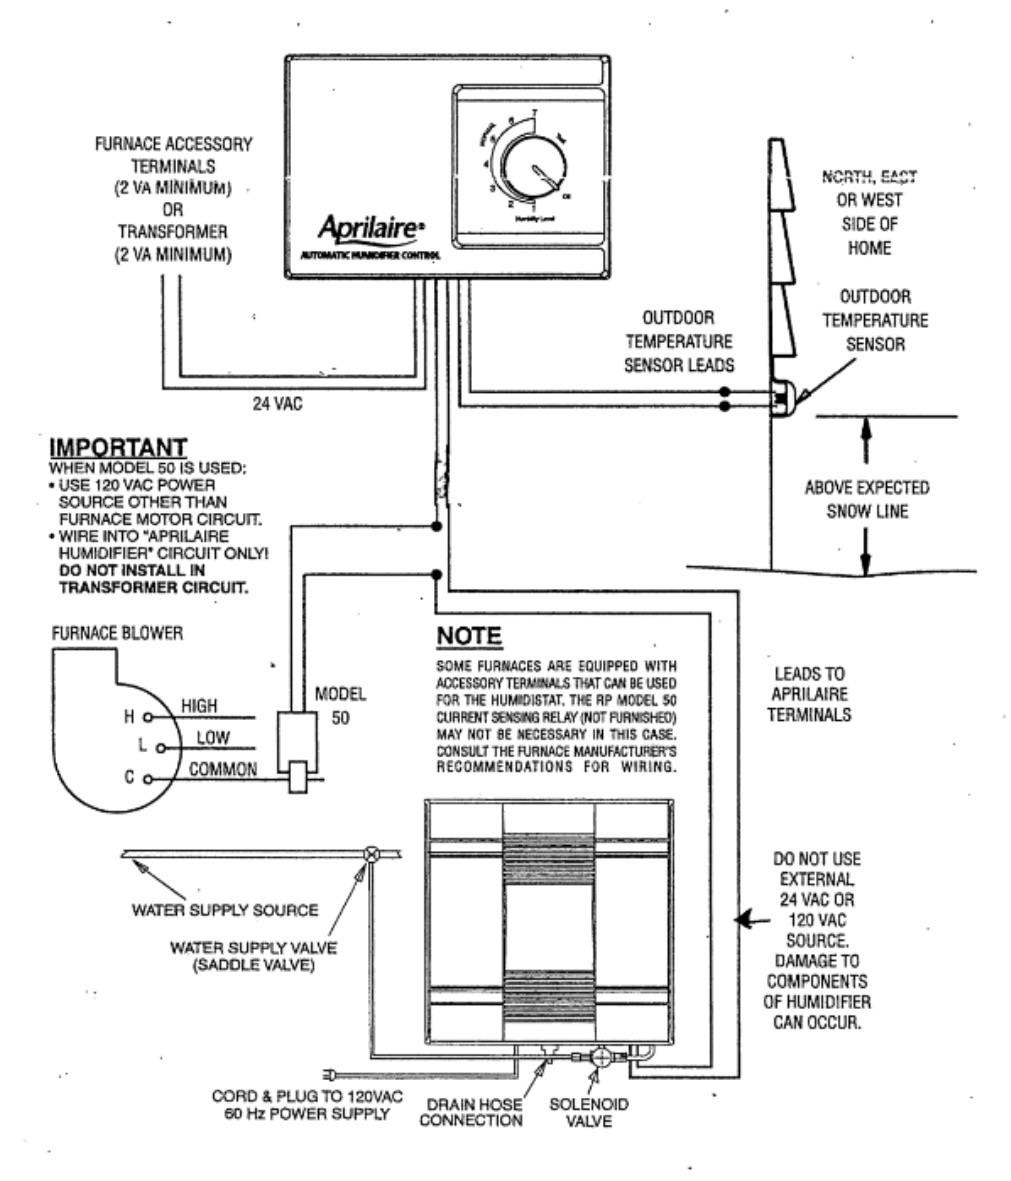 digital thermostat wiring diagram auto electrical wiring diagram